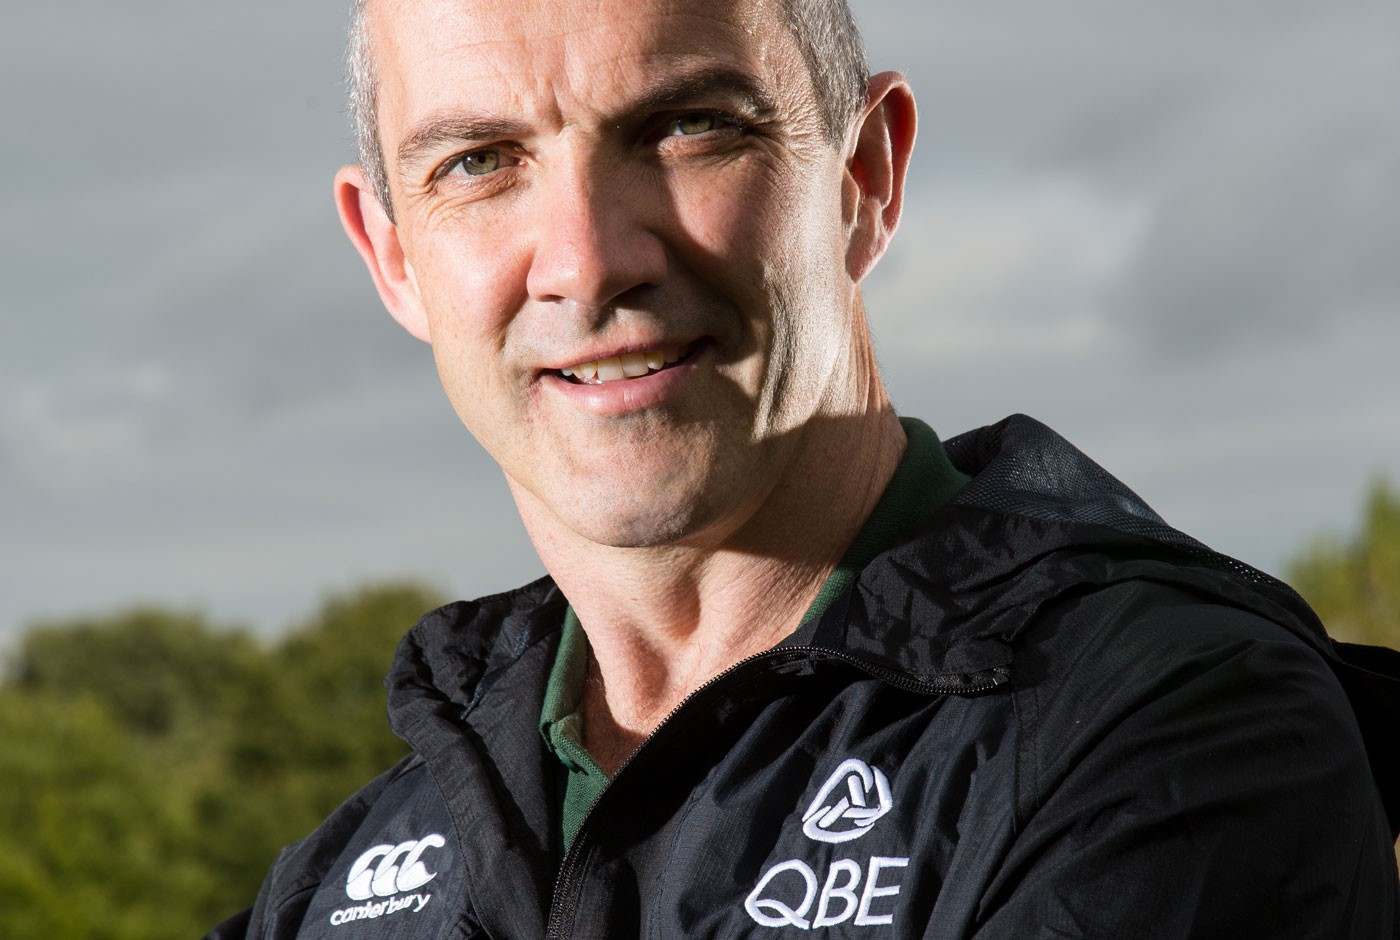 Conor O'Shea on how 6 Nations' performances will impact Lions' selection